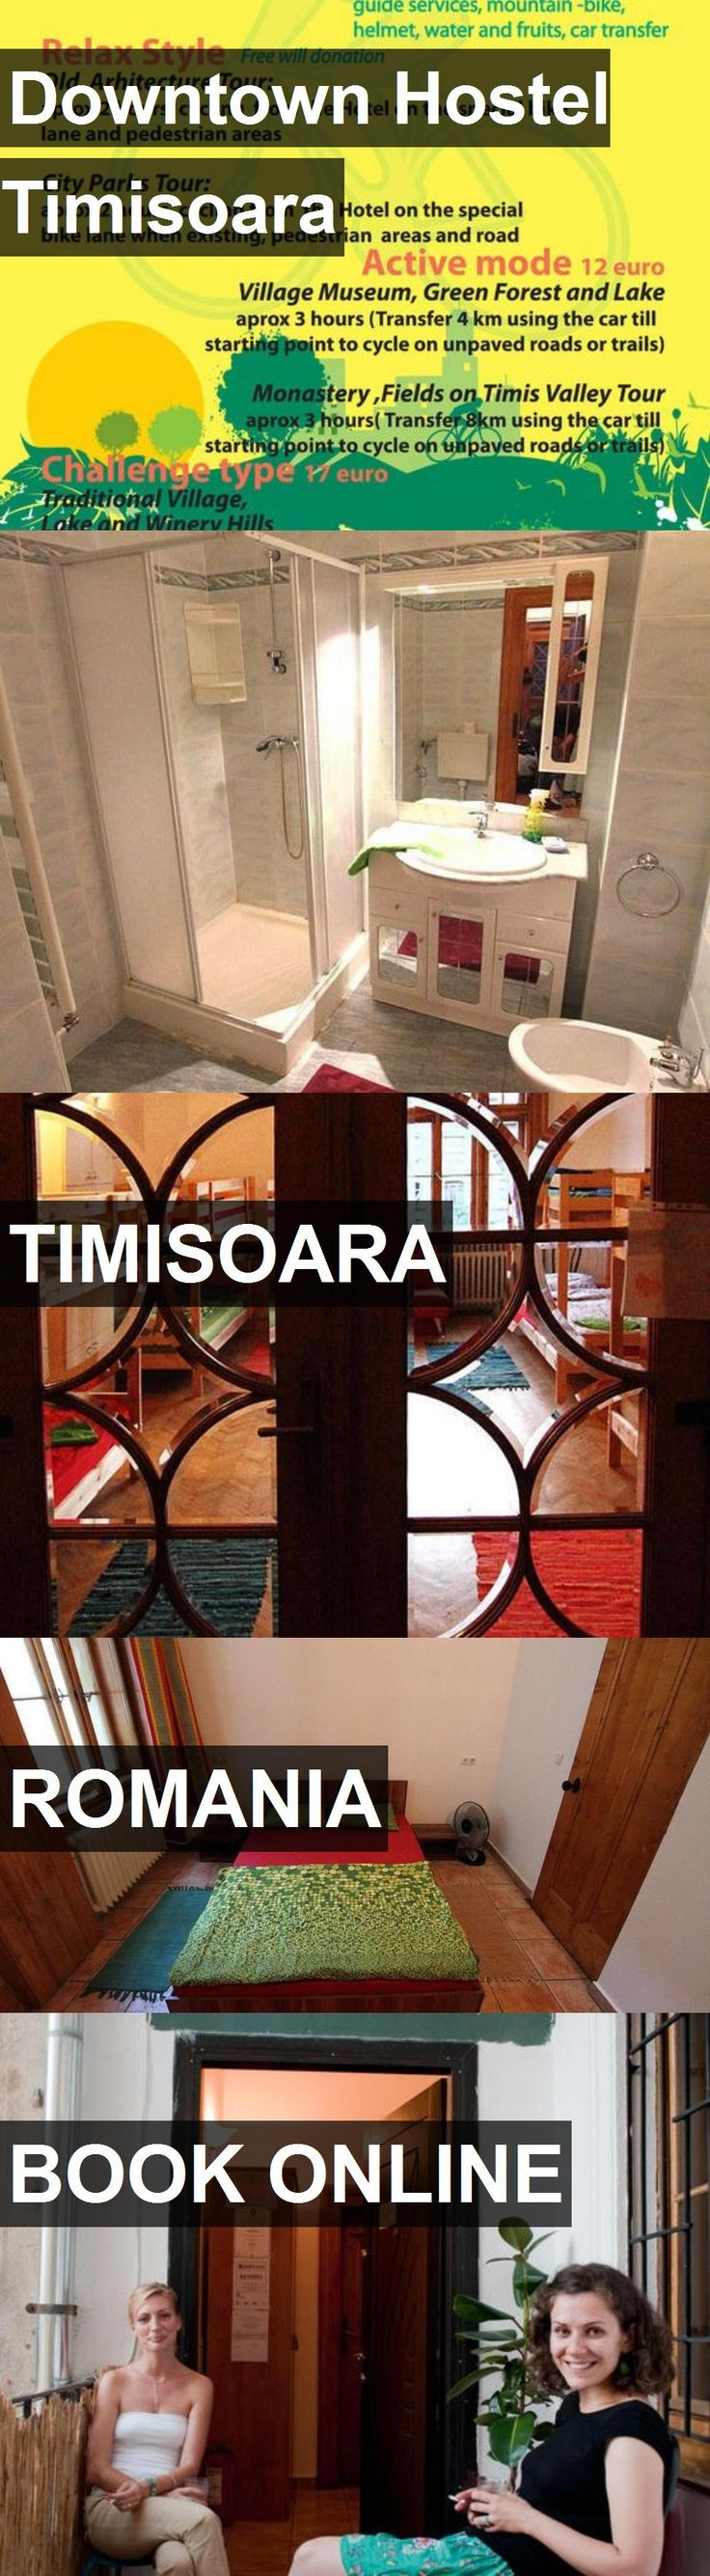 Hotel Downtown Hostel Timisoara in Timisoara, Romania. For more information, photos, reviews and best prices please follow the link. #Romania #Timisoara #DowntownHostelTimisoara #hotel #travel #vacation